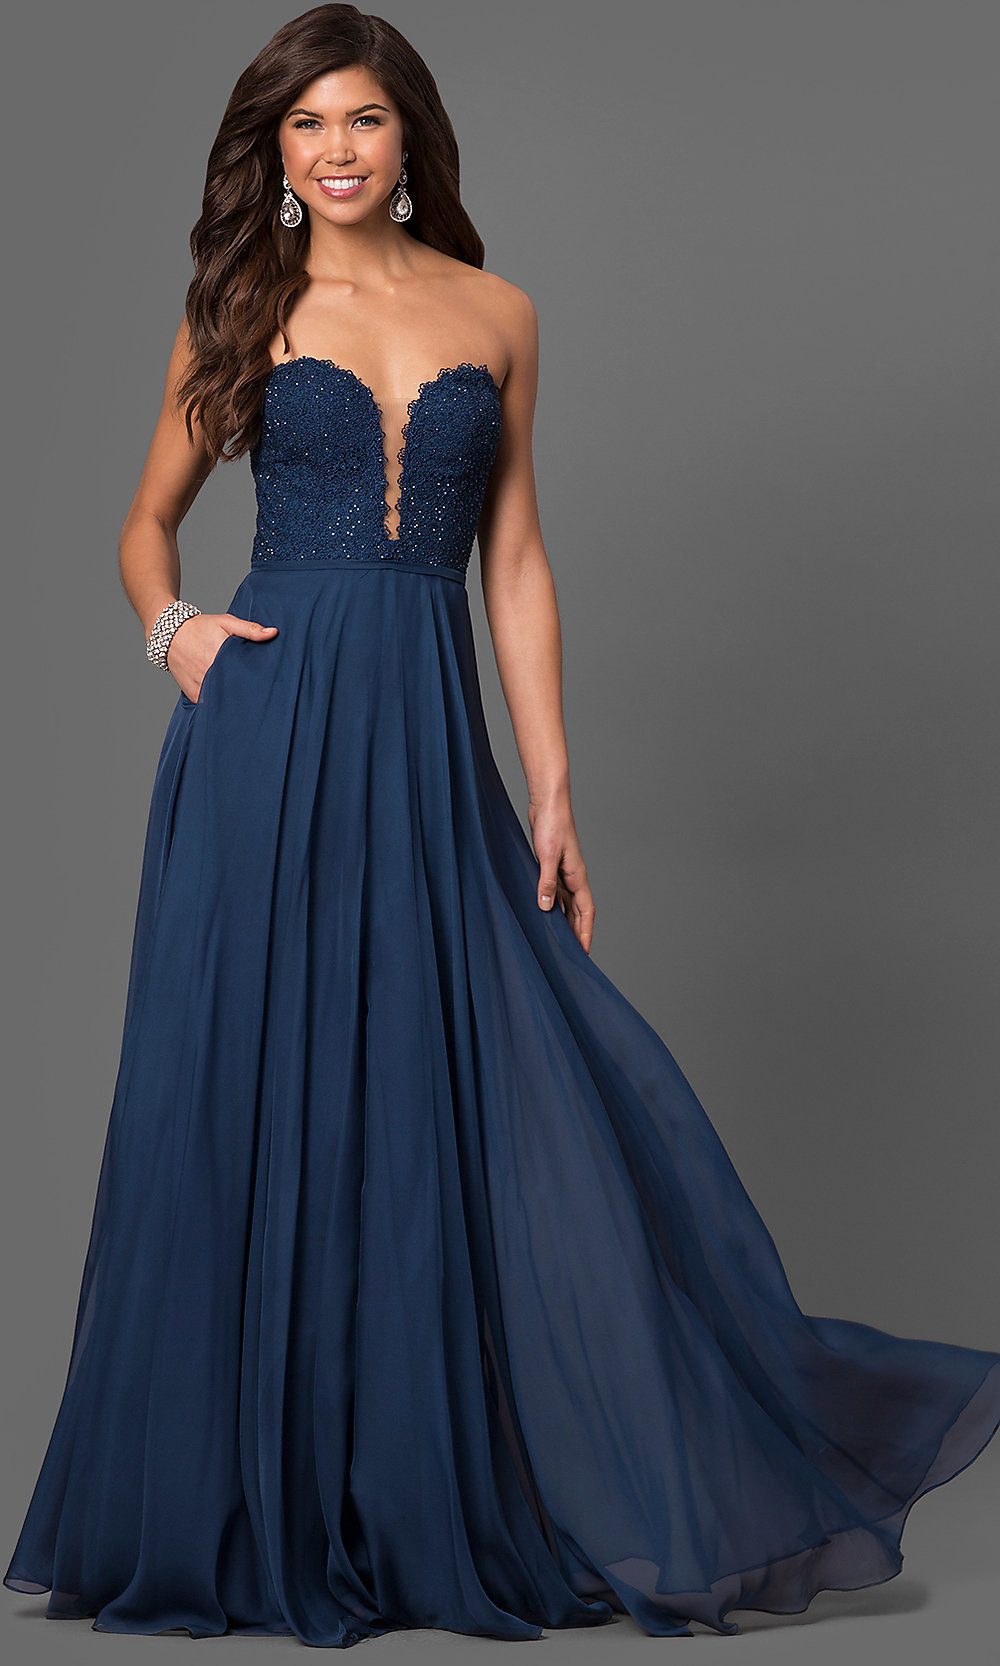 Celebrity Prom Dresses, Sexy Evening Gowns - PromGirl: LF-23970